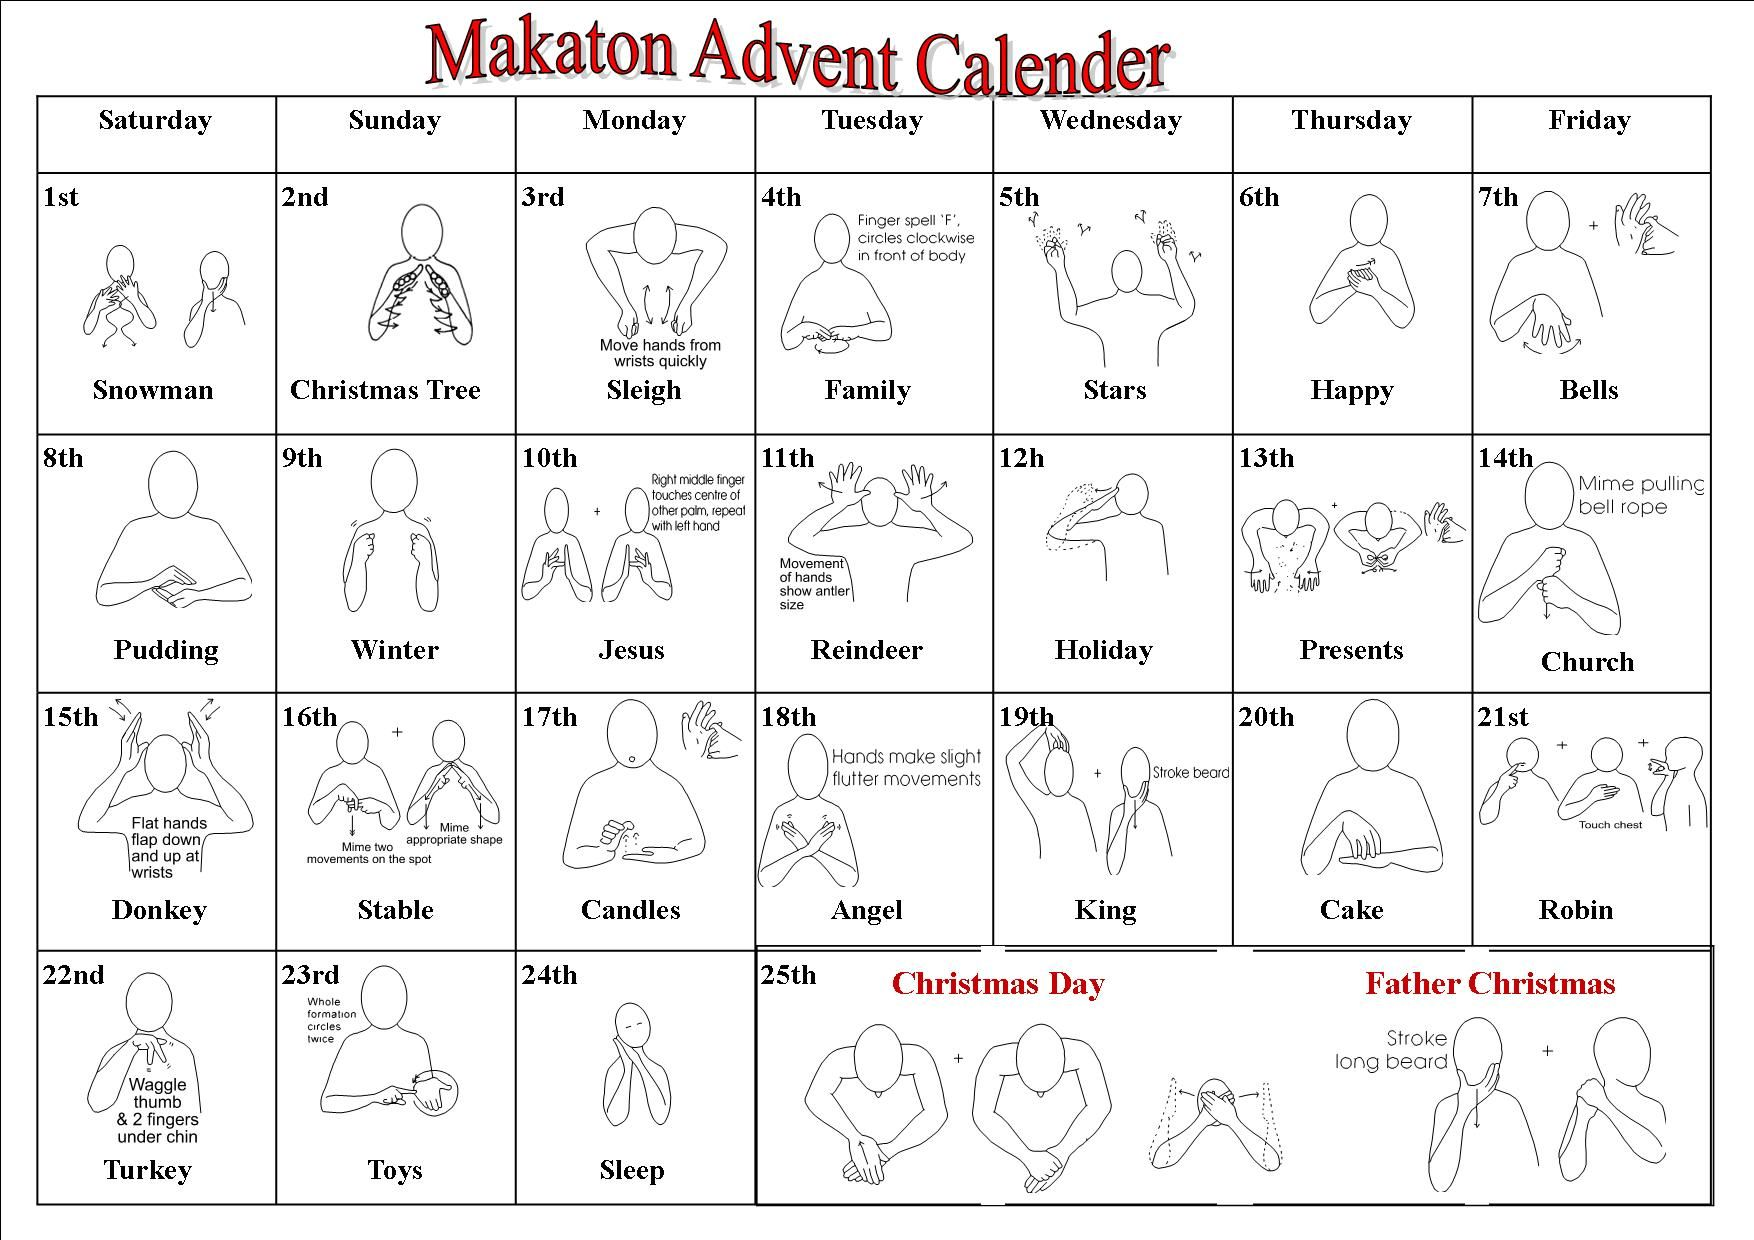 on advent calendars google search makaton signs signs pictures makaton ...